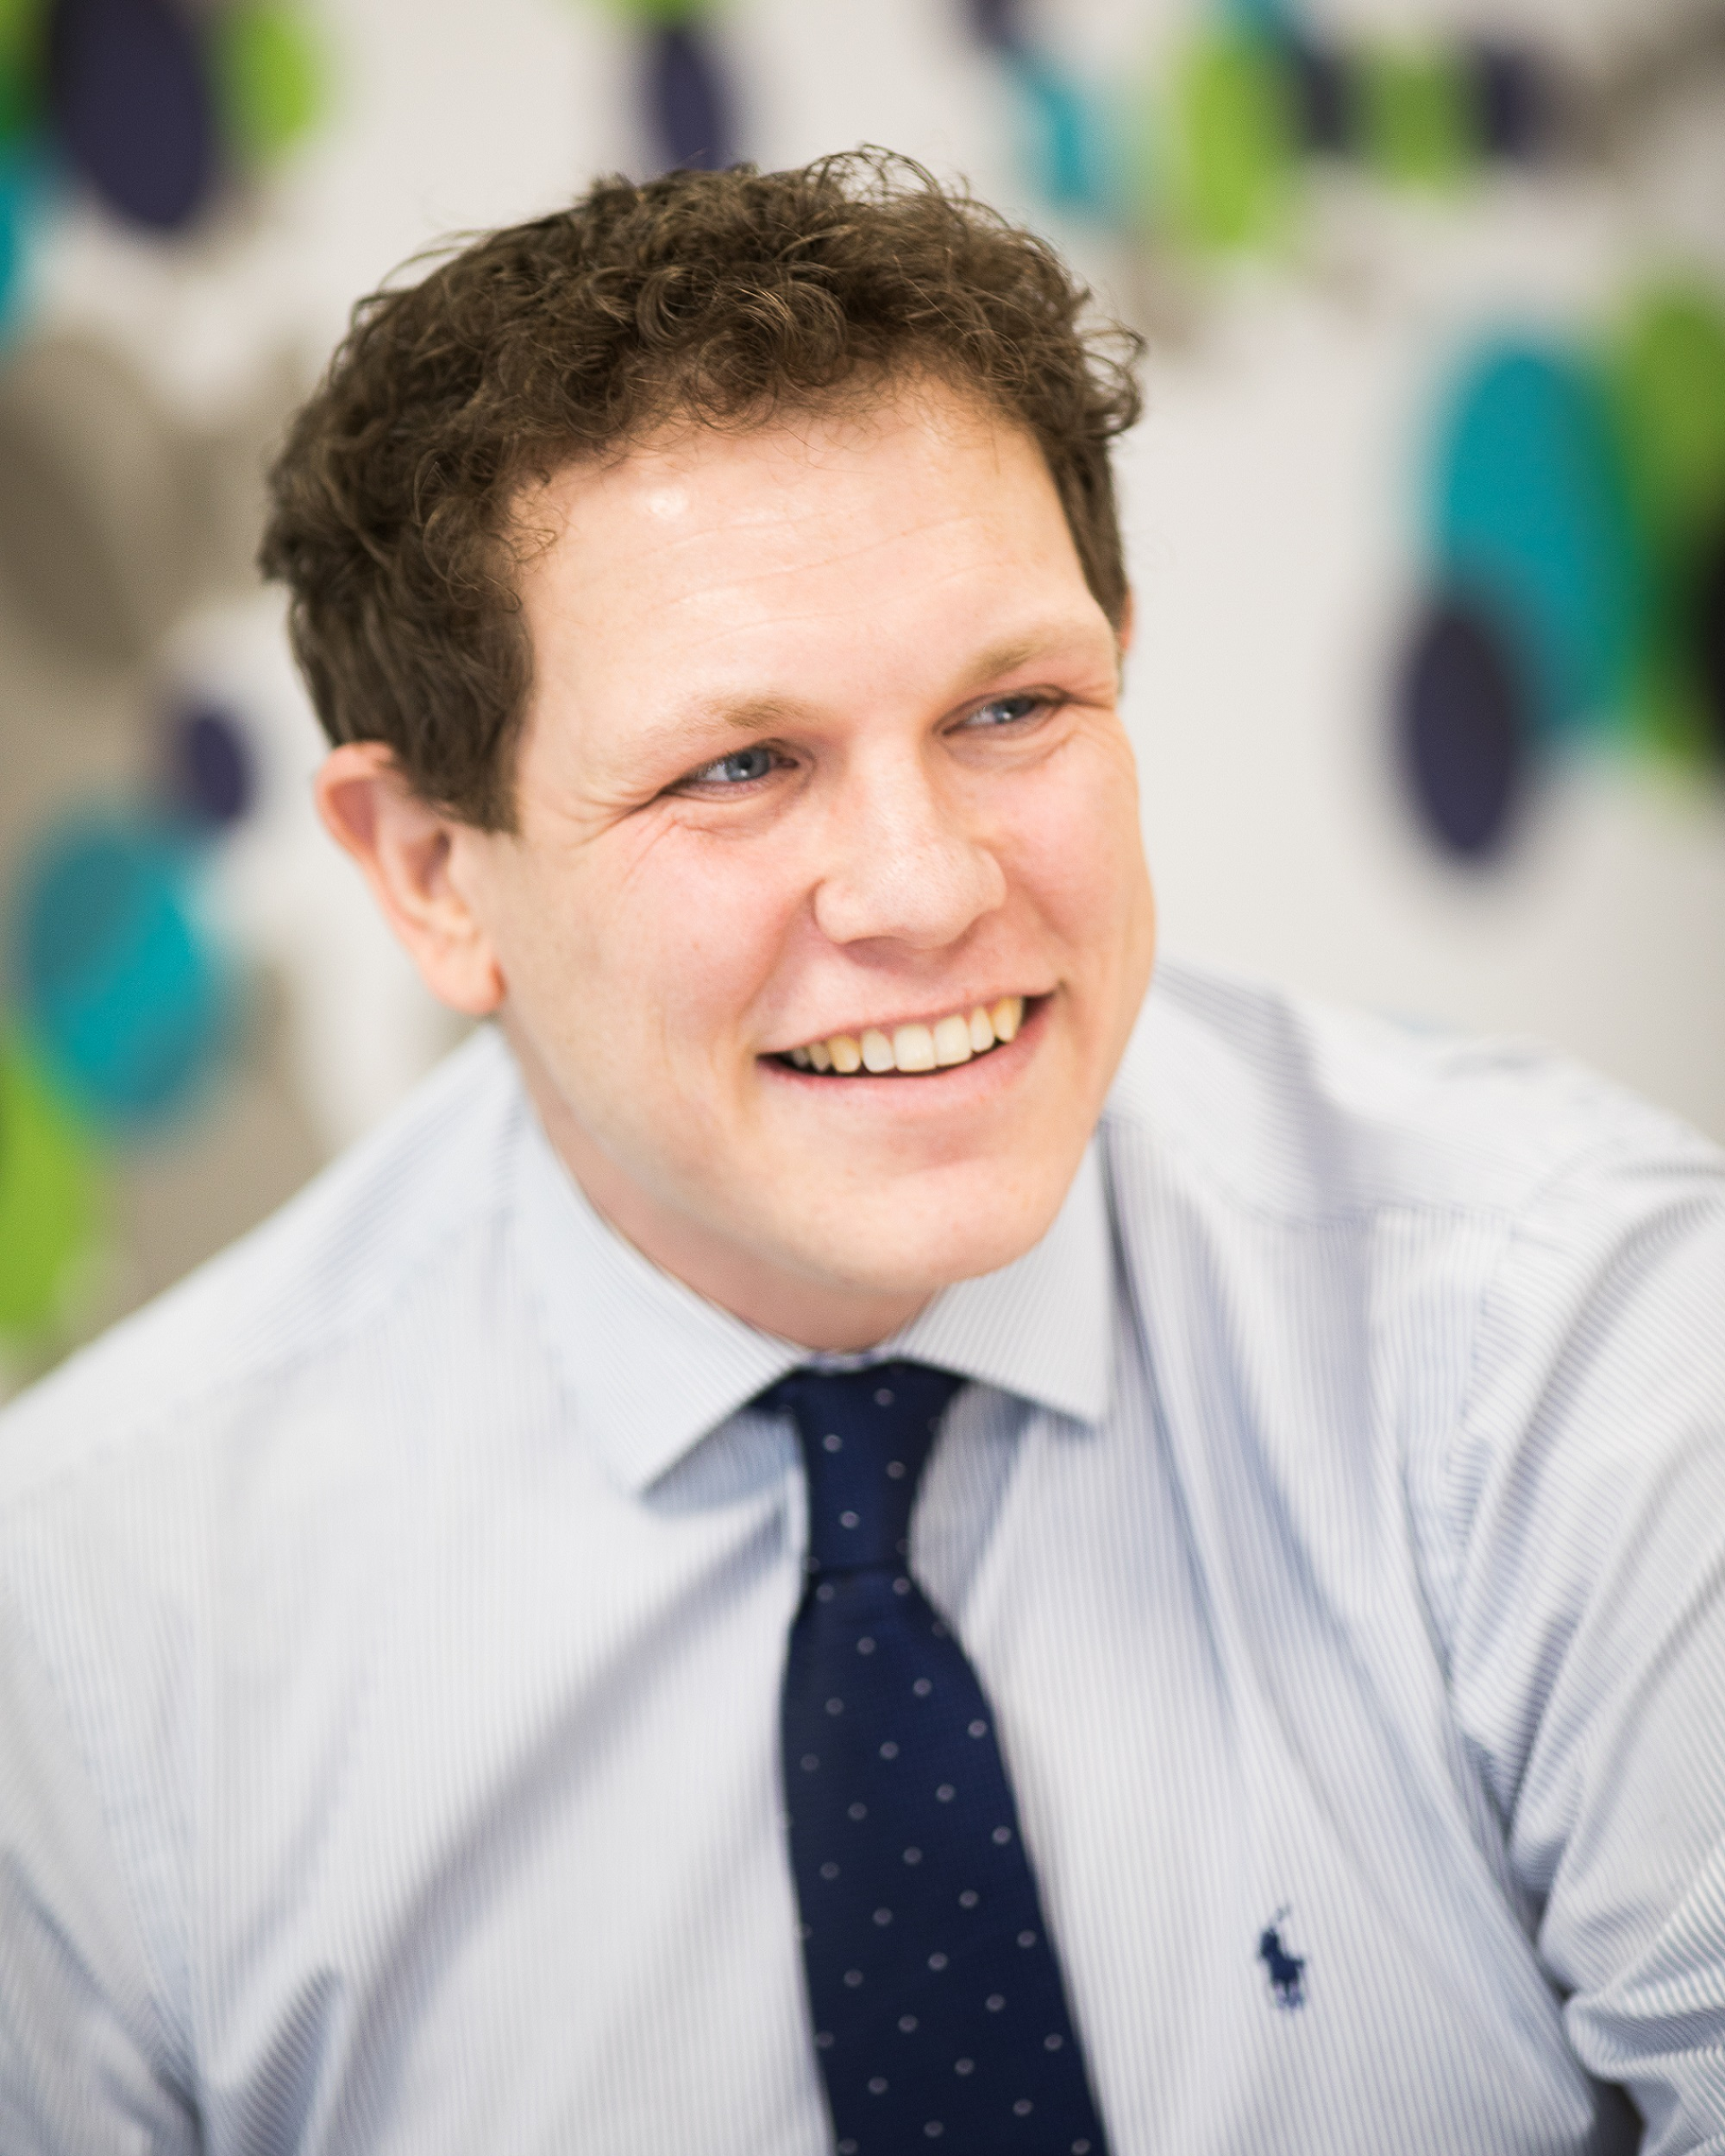 IR35 CHANGES REINFORCE IMPORTANCE OF CONTRACTOR AND CLIENT RELATIONSHIP, SAYS ACCOUNTANCY FIRM